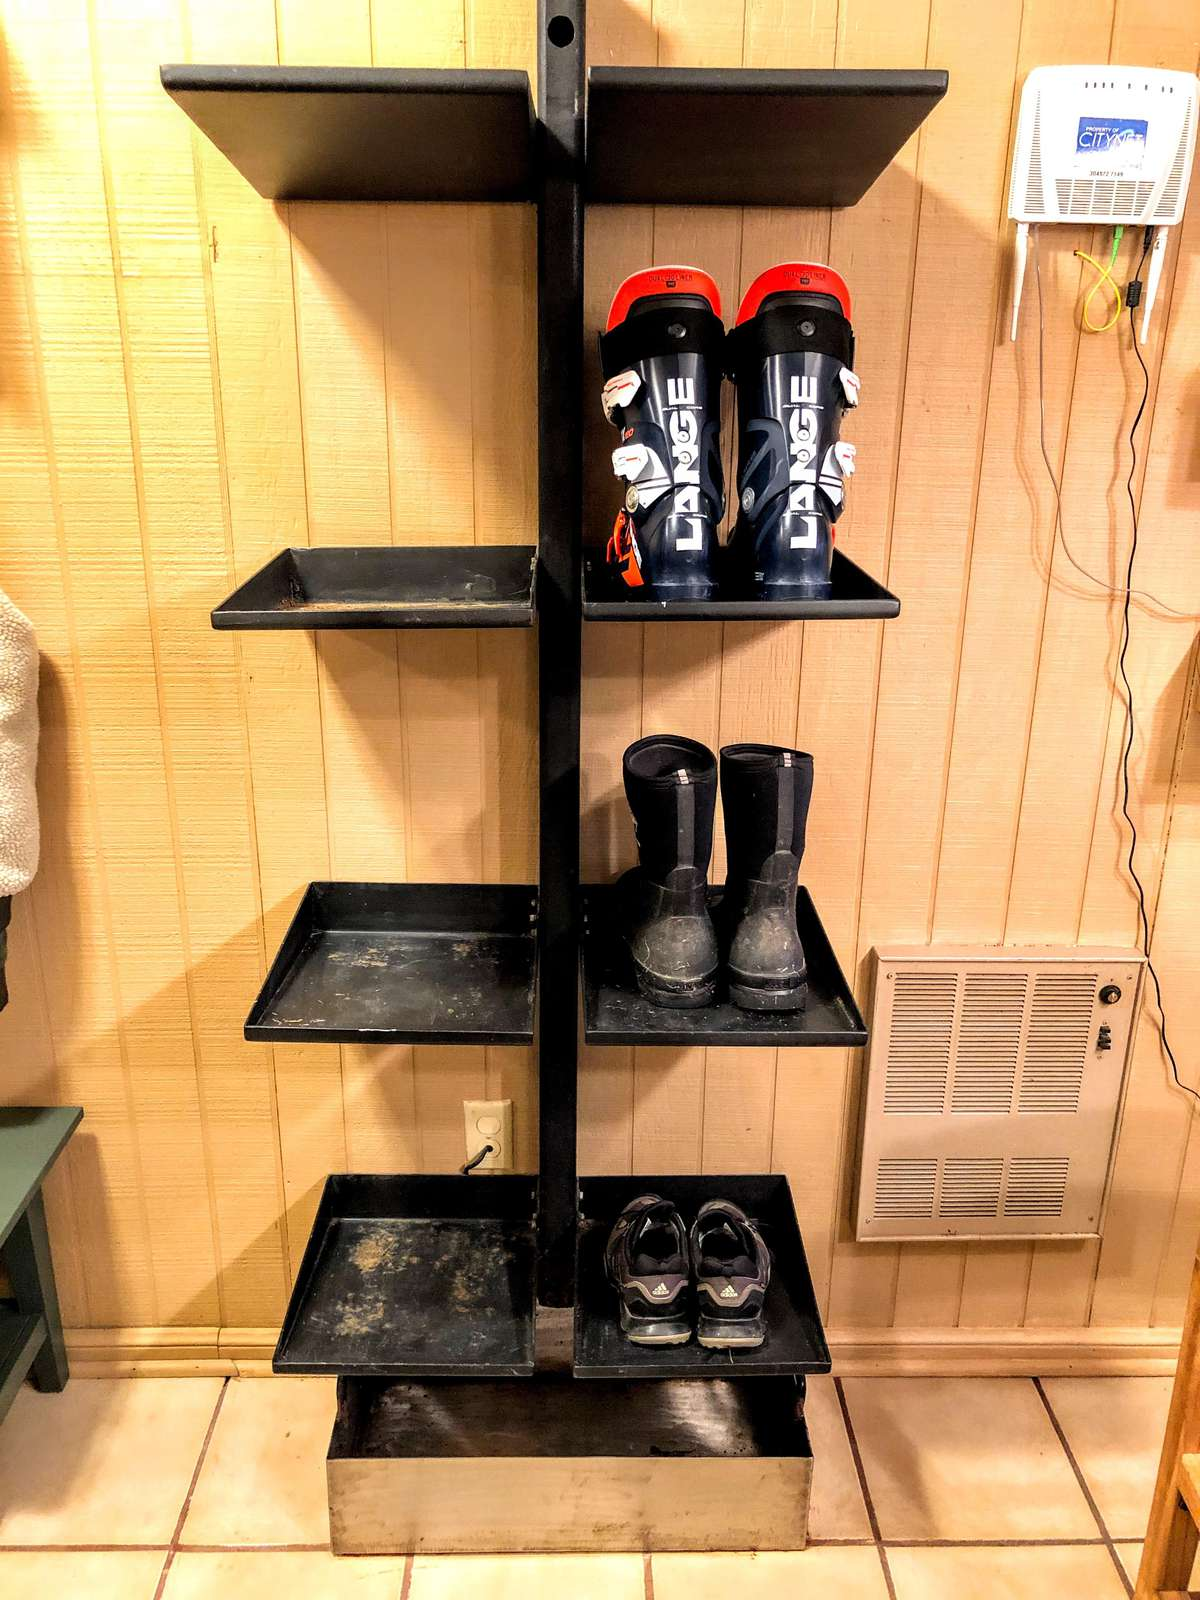 Please keep all shoes and boots on our boot rack. Melting water and mud will drain down into the pan below (easy for our housekeeper to clean up).